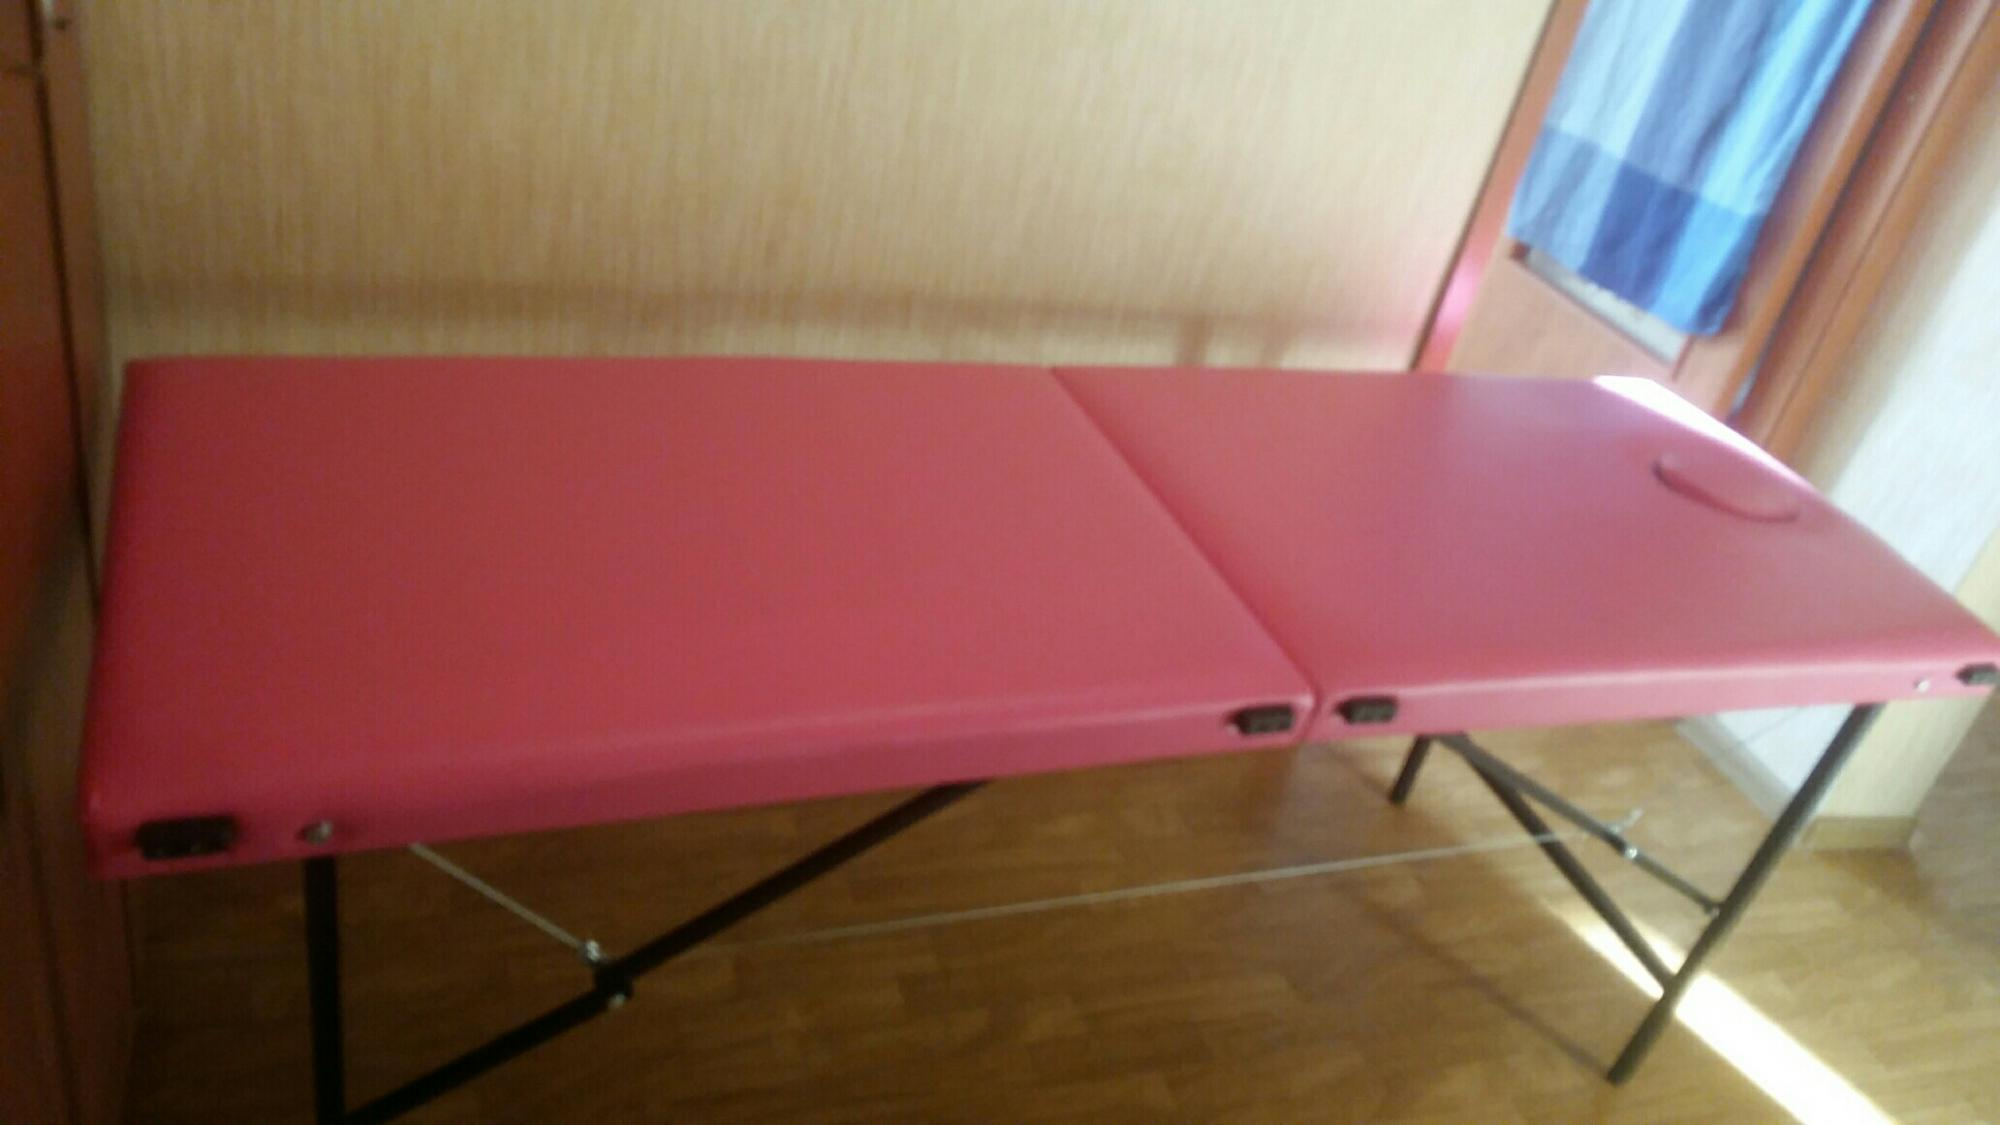 Massage table in Moscow buy 2